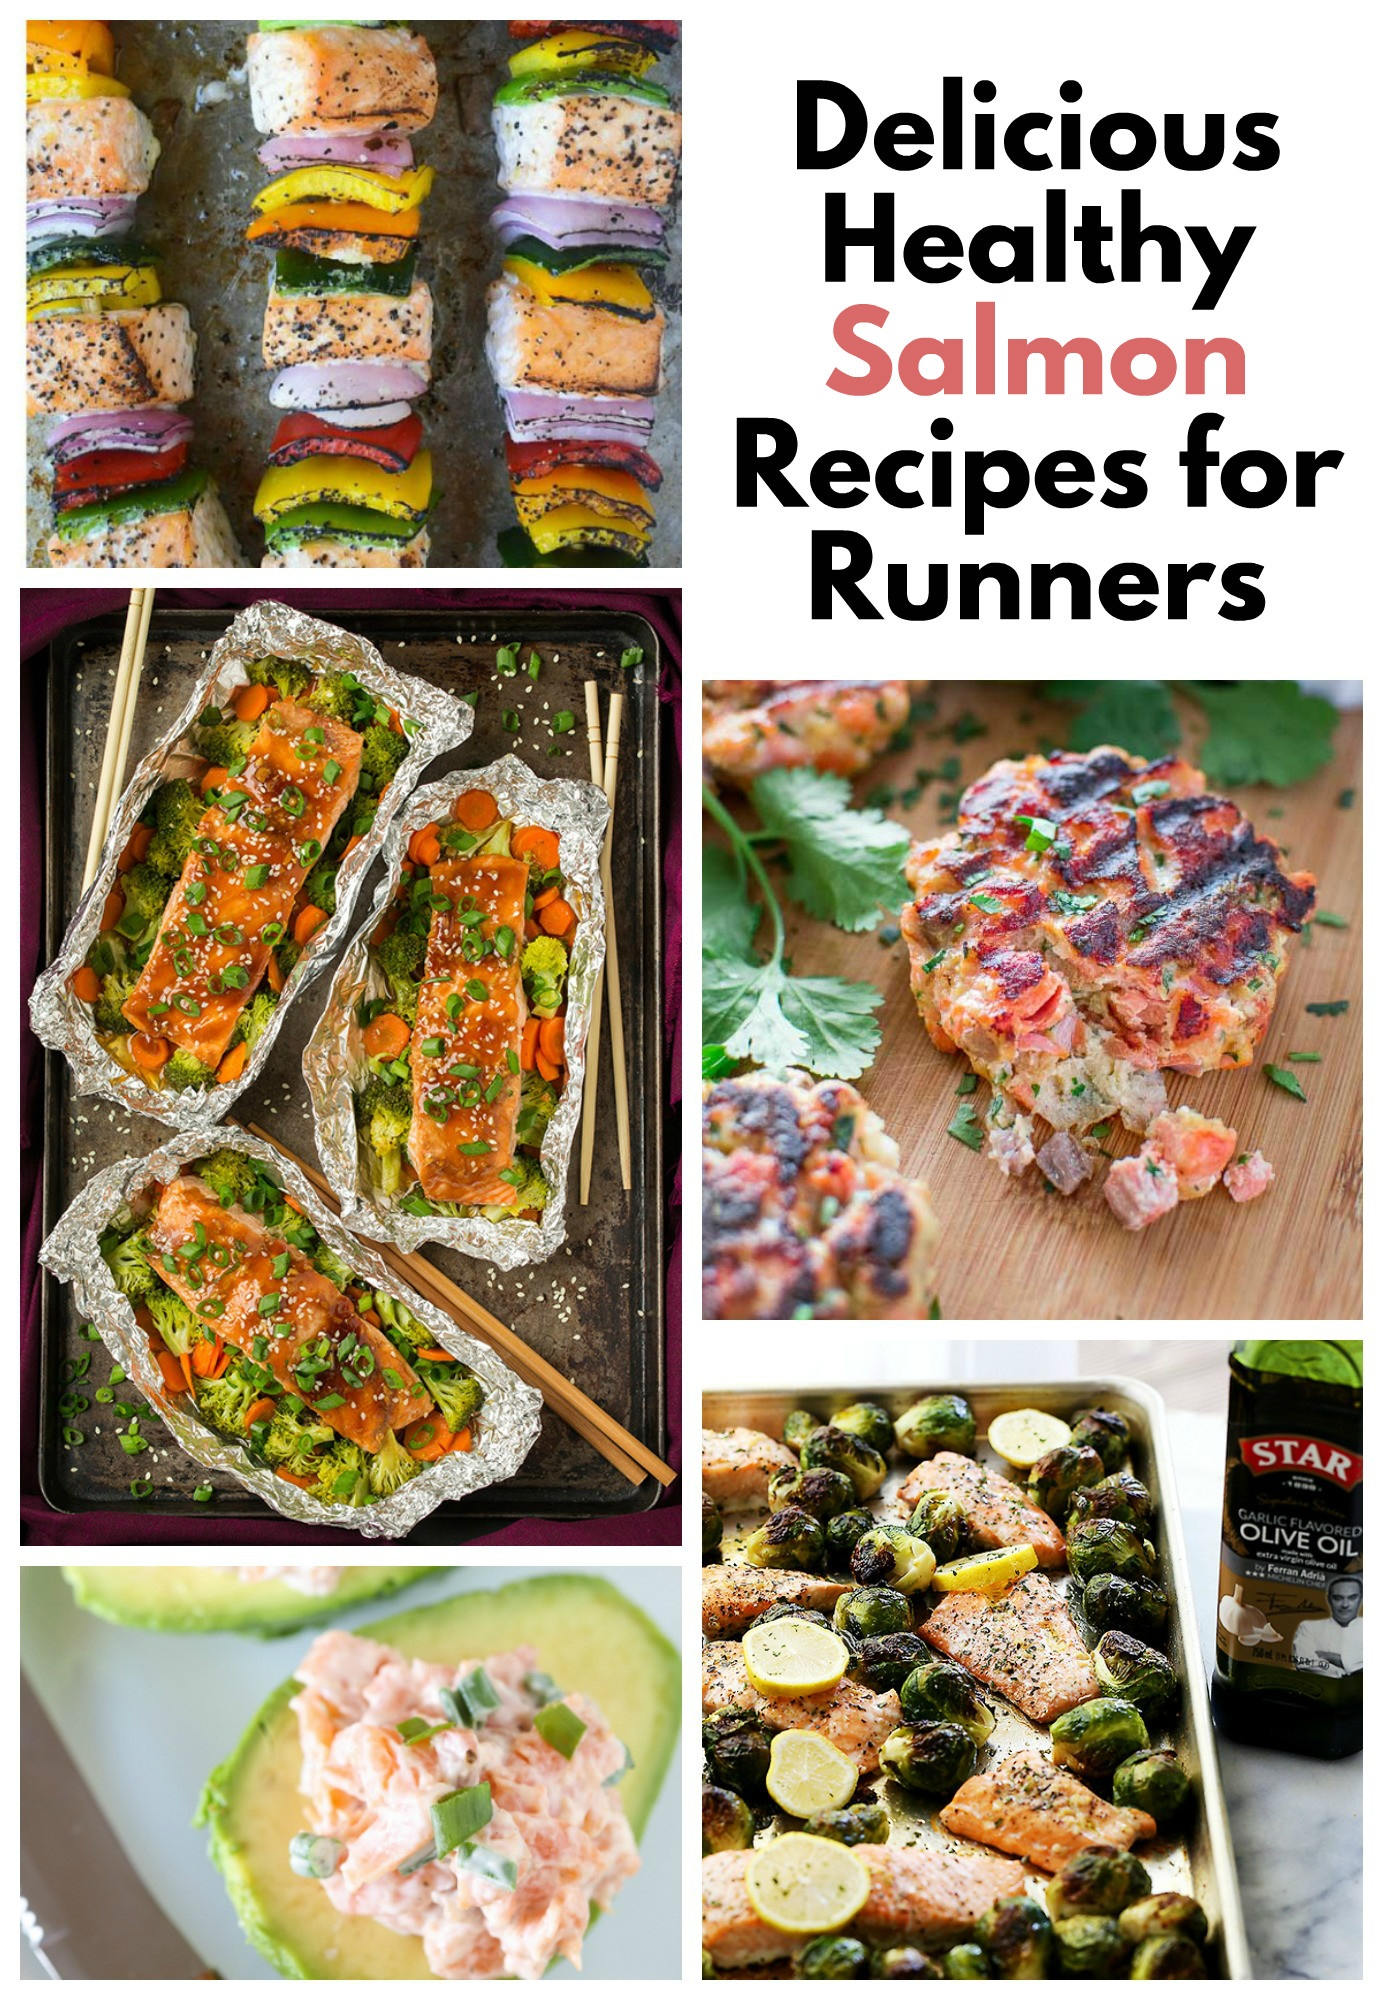 recipes for runners